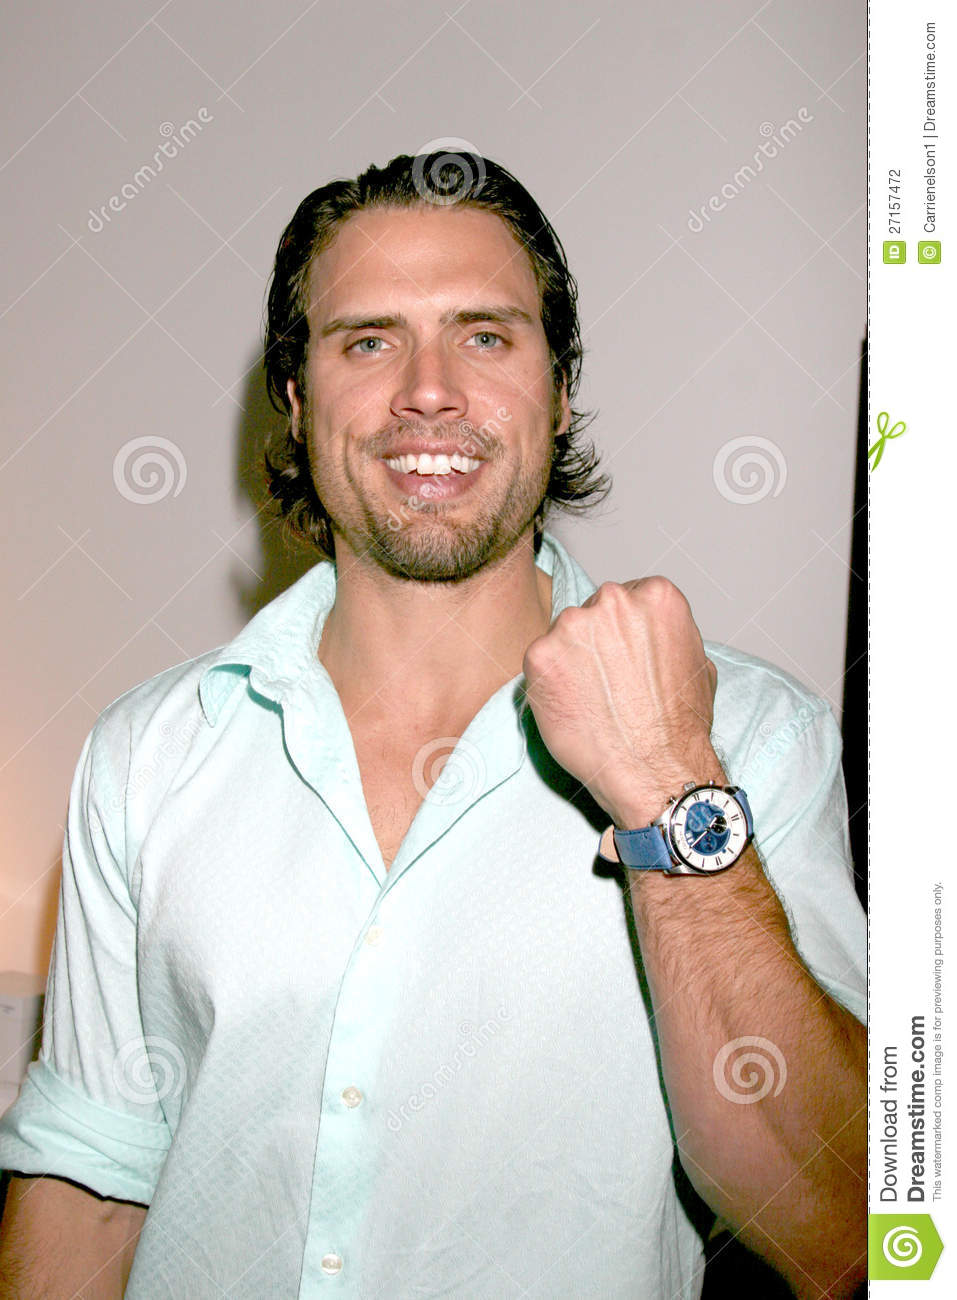 joshua morrow familyjoshua morrow age, joshua morrow wife, joshua morrow net worth, joshua morrow family, joshua morrow twitter, joshua morrow parents, joshua morrow bio, joshua morrow young, joshua morrow height, joshua morrow band, joshua morrow married, joshua morrow instagram, joshua morrow facebook, joshua morrow young and restless, joshua morrow daughter, joshua morrow actor, joshua morrow spouse, joshua morrow movies, joshua morrow oklahoma, joshua morrow home